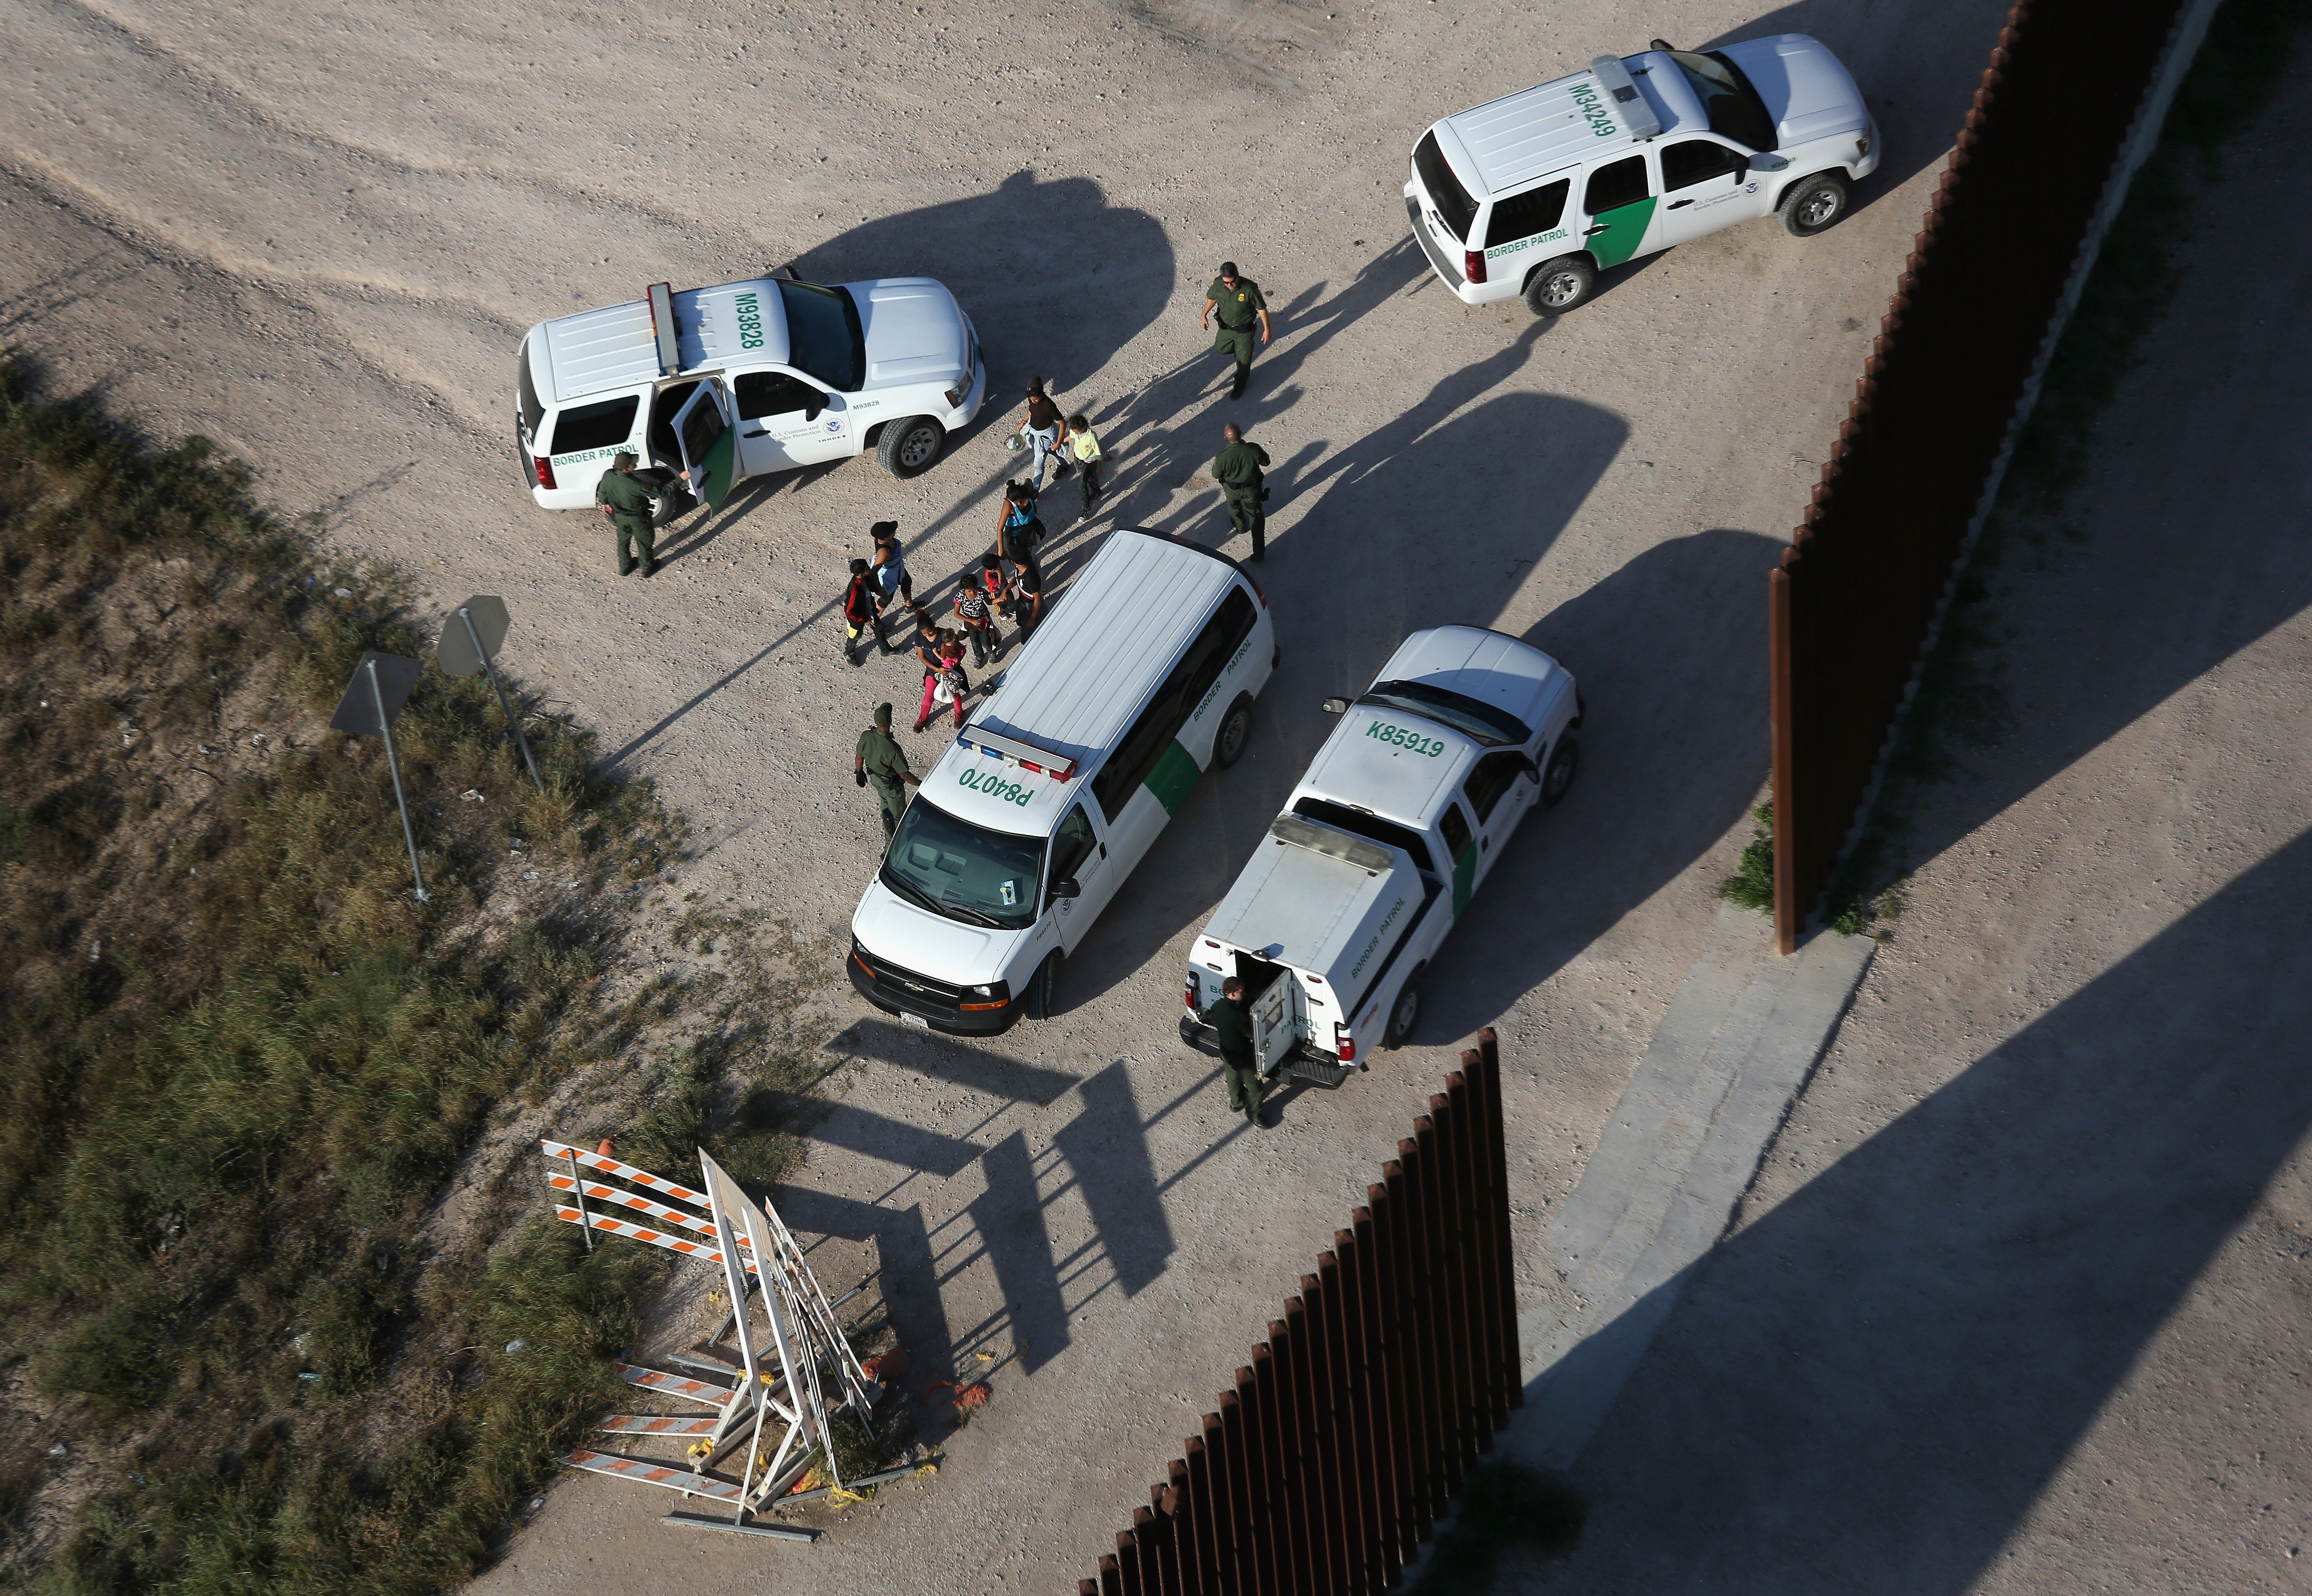 U.S. Border Patrol agents take undocumented immigrant families into custody at the border fence in McAllen, Texas on July 21, 2014.